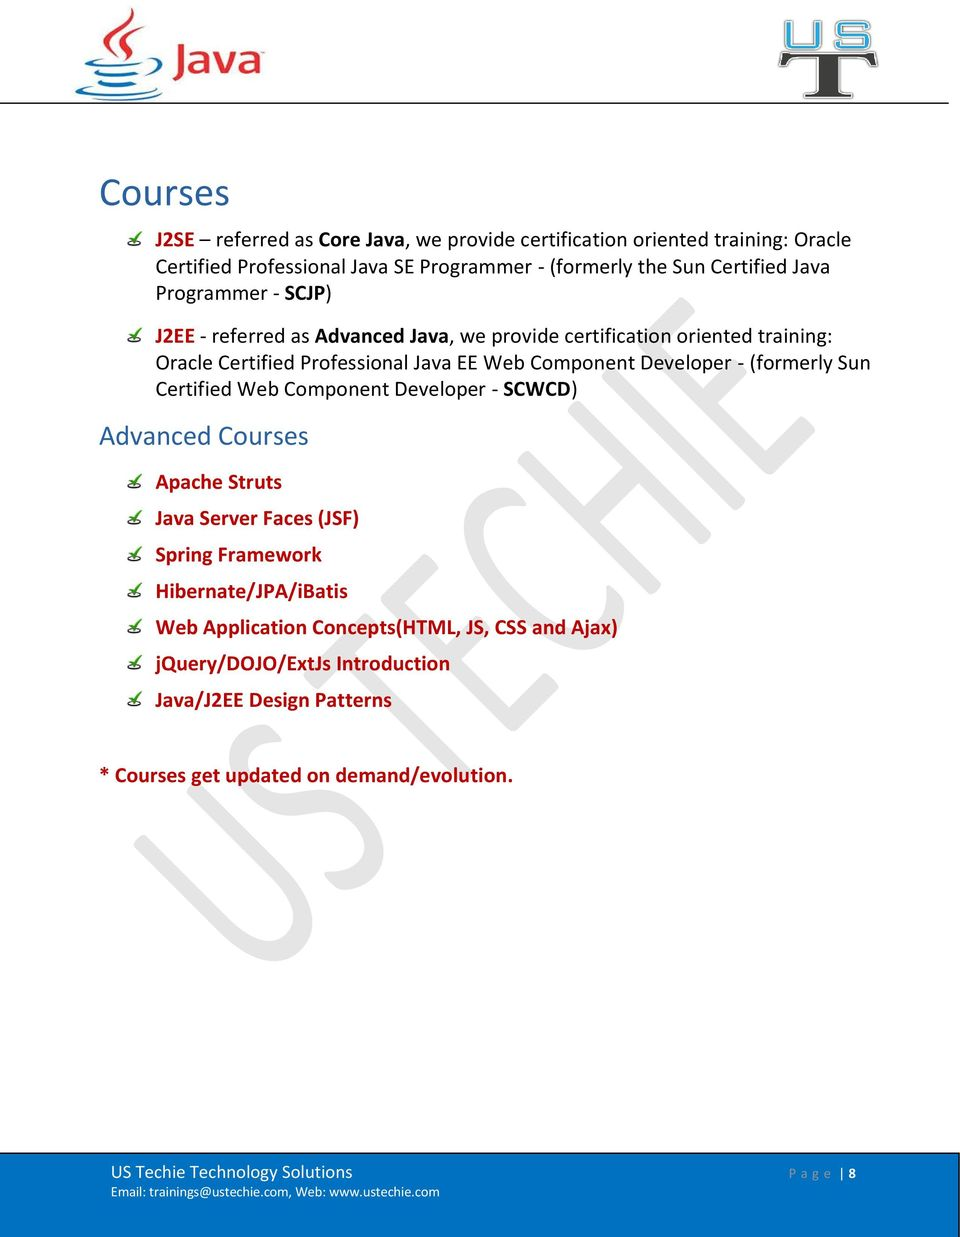 Java (J2SE & J2EE) and Web Development Training Catalog - PDF